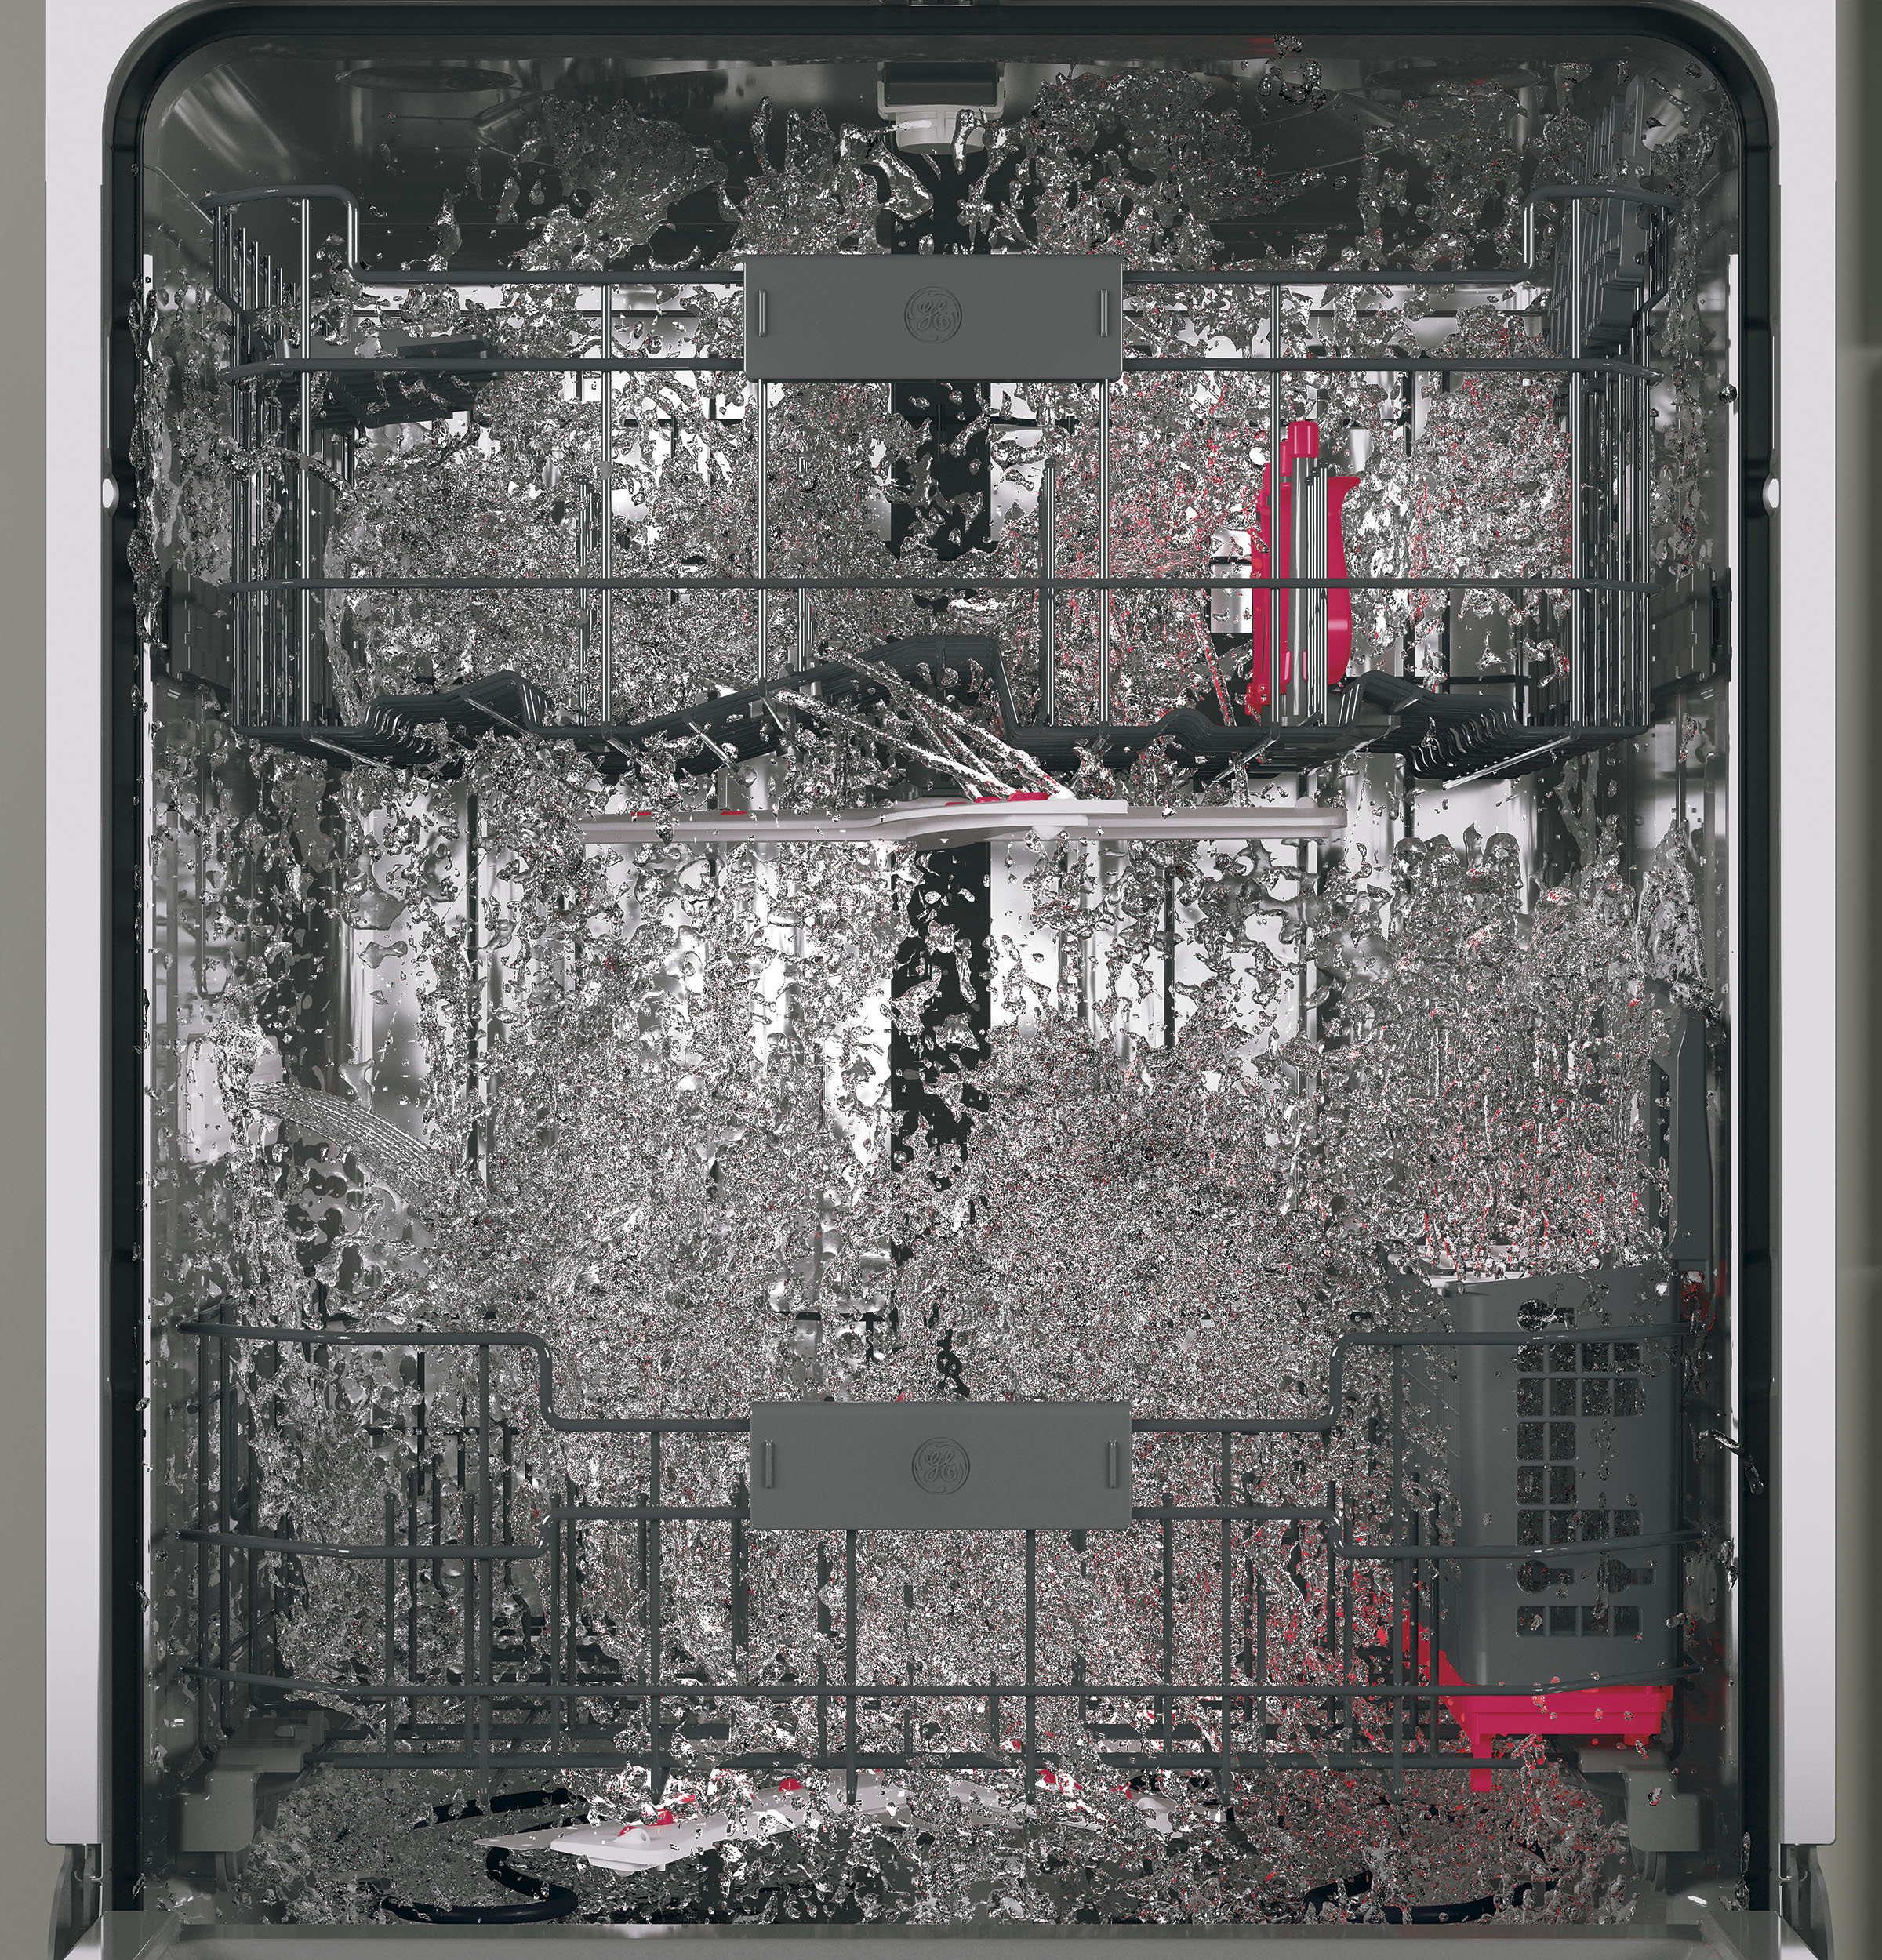 Model: PDT855SMJES | GE Profile GE Profile™ Stainless Steel Interior Dishwasher with Hidden Controls